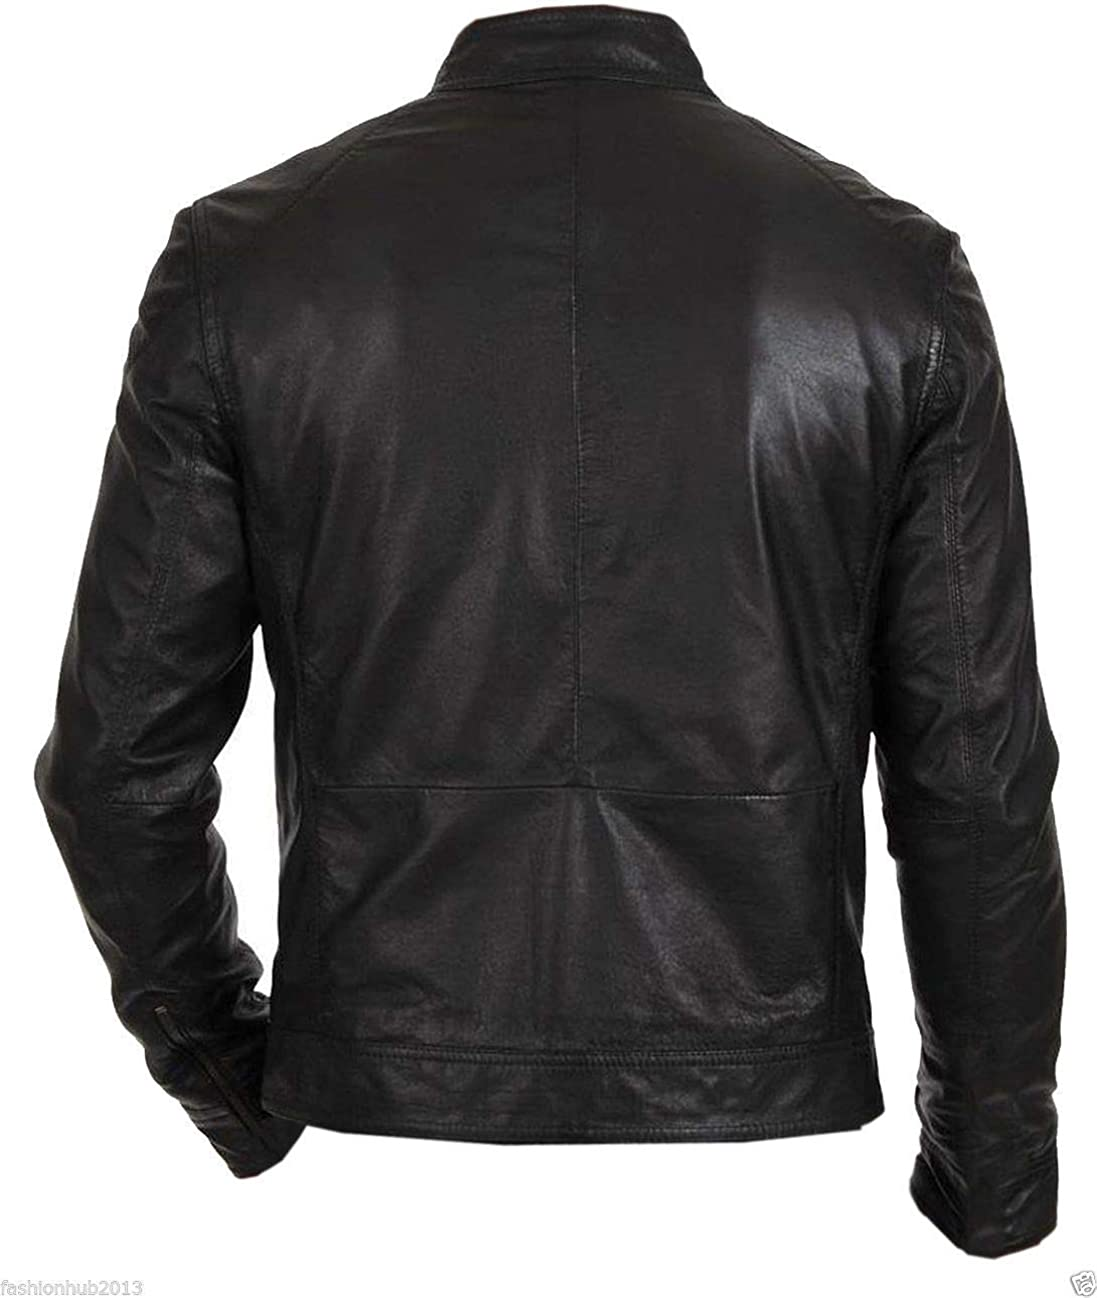 New Fashion Style Mens Leather Jackets Motorcycle Bomber Biker Black Real Leather Jacket Men